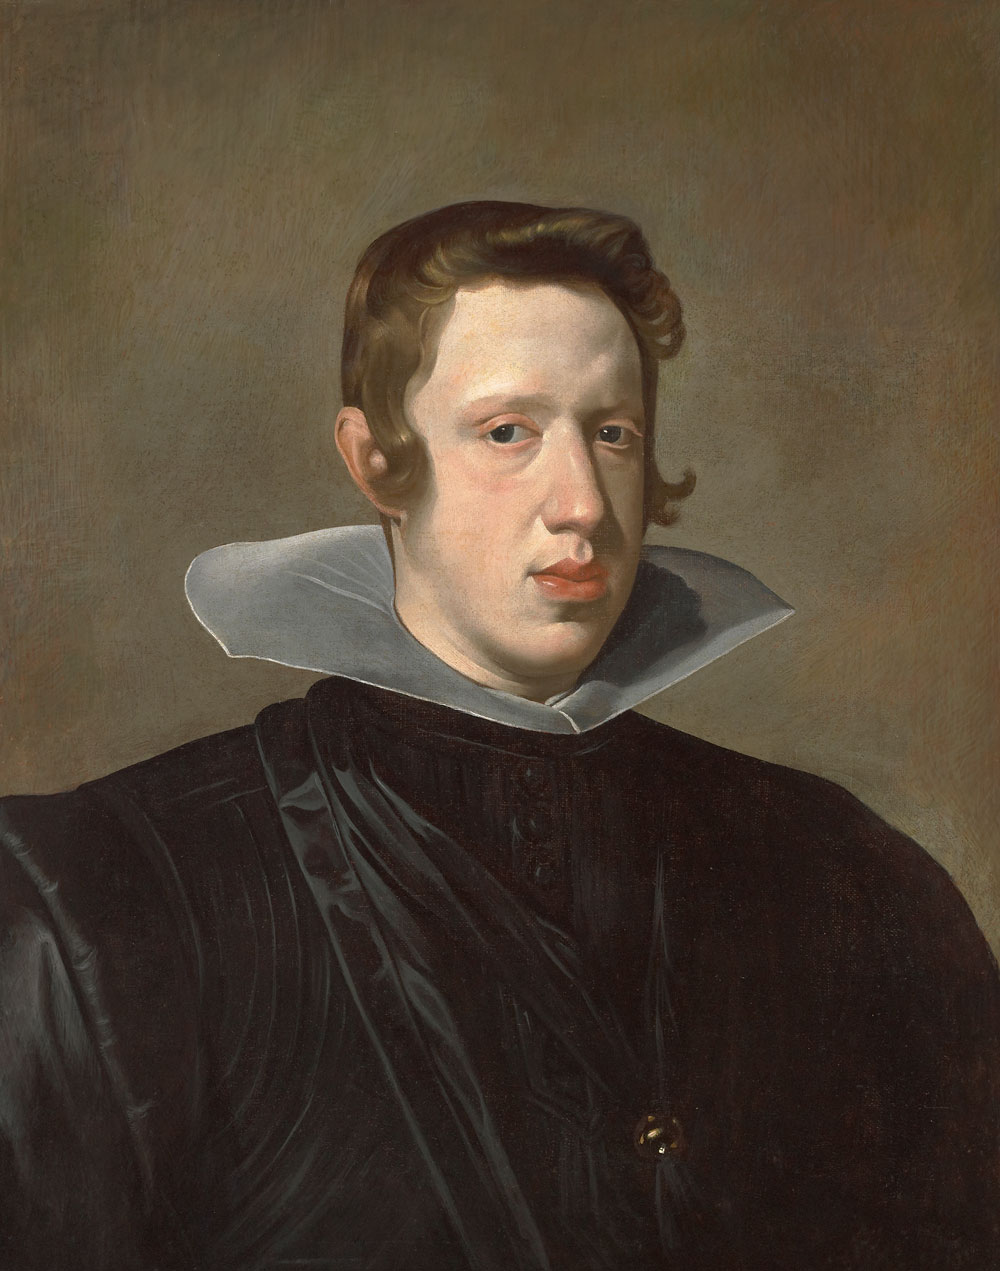 Diego Rodríguez de Silva y Velázquez (Spain, 1599–1660), Portrait of King Philip IV, 1623–24. Oil on canvas. Meadows Museum, SMU, Dallas, Algur H. Meadows Collection, MM.67.23.